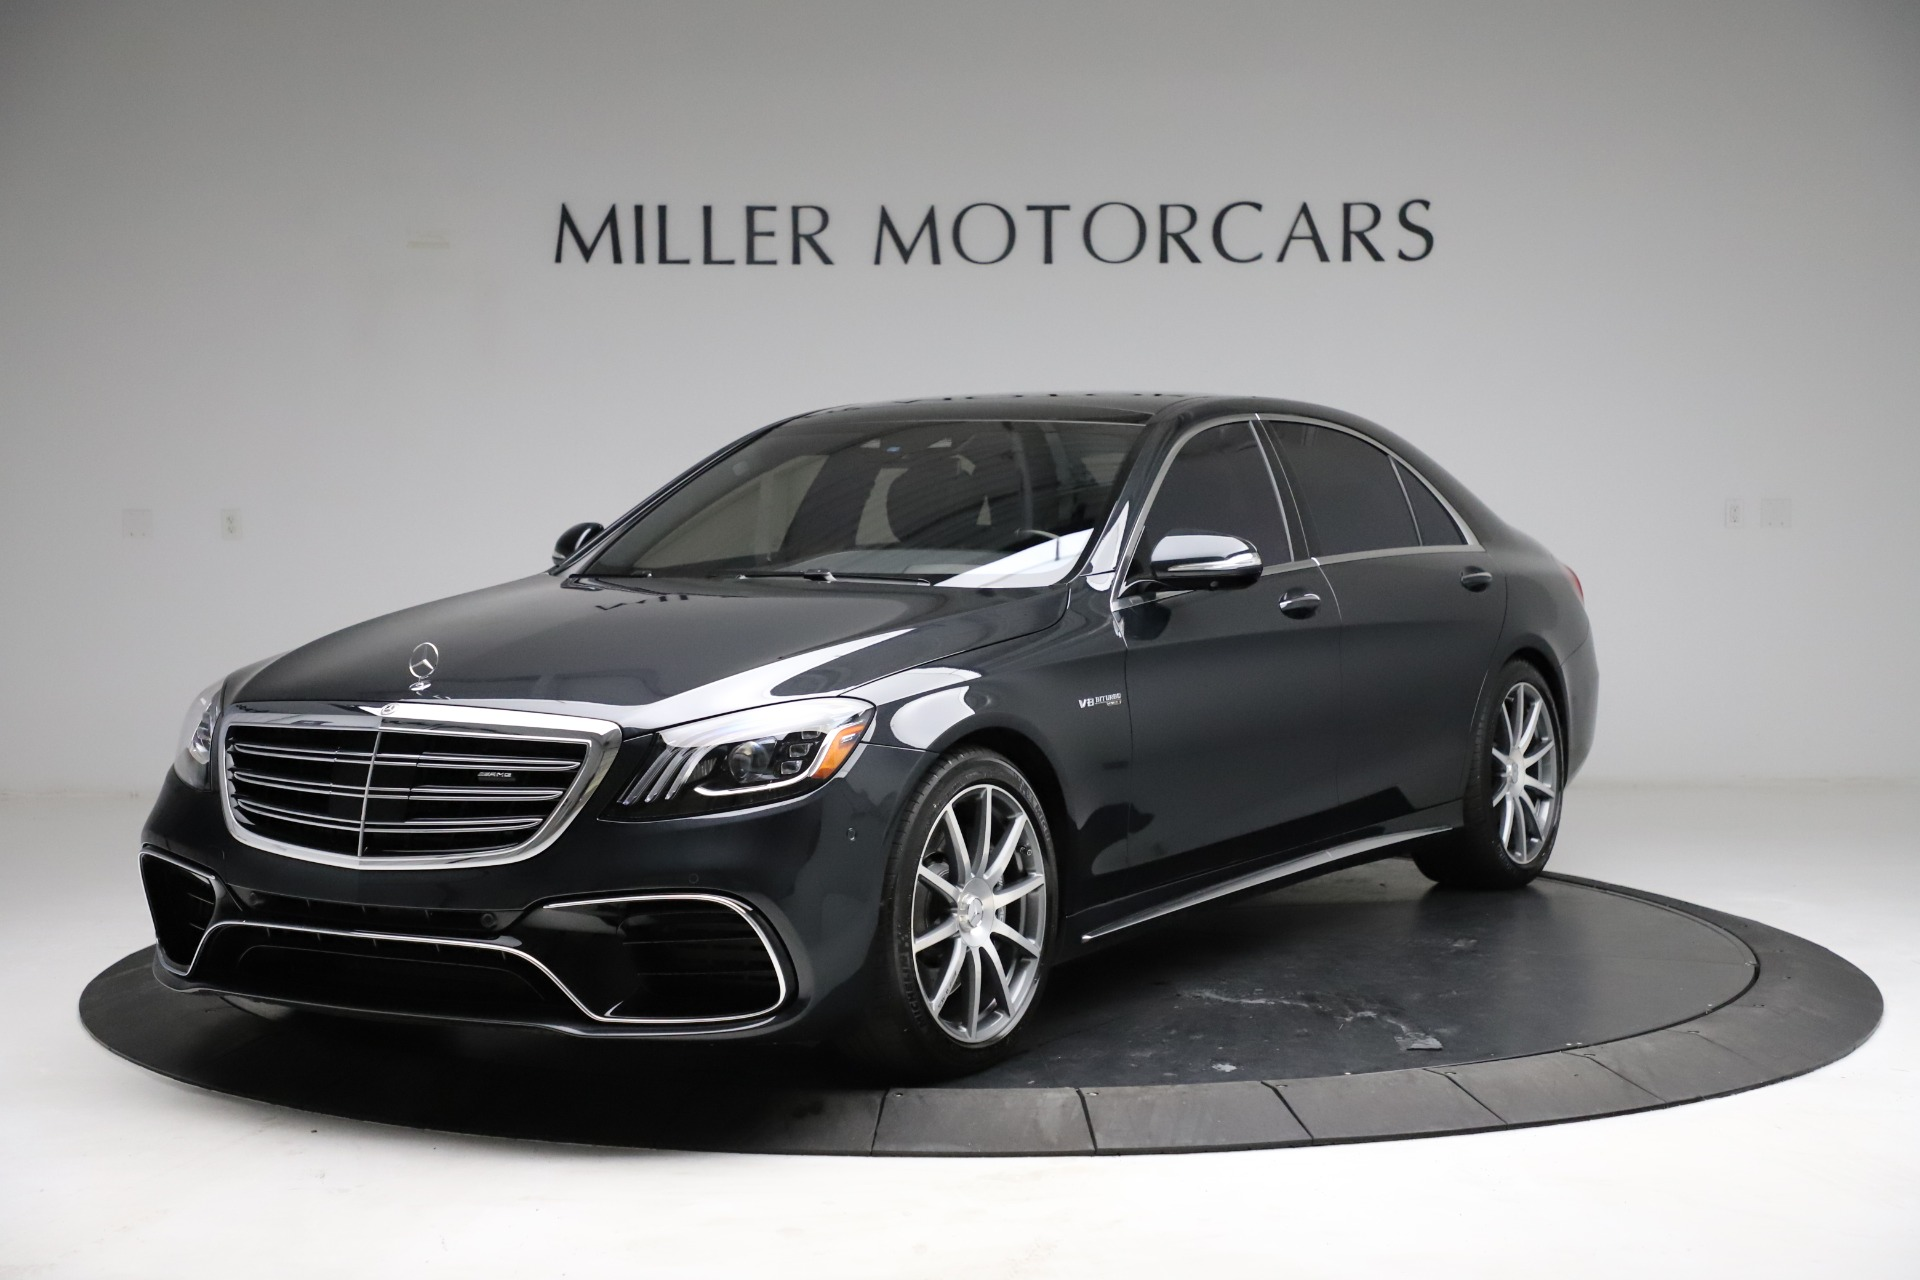 Used 2019 Mercedes-Benz S-Class AMG S 63 for sale $122,900 at Bentley Greenwich in Greenwich CT 06830 1